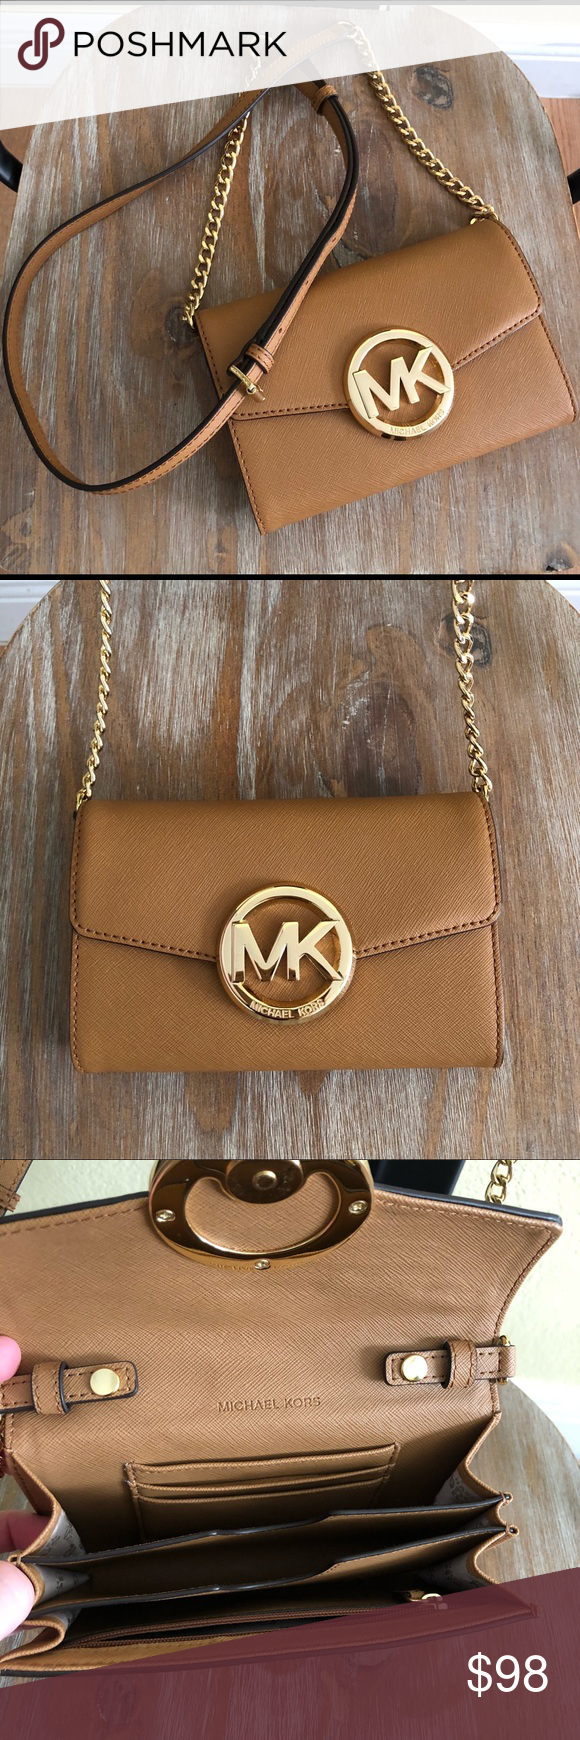 7422d5c81dd Spotted while shopping on Poshmark  Michael Kors Leather Crossbody Purse Clutch!   poshmark  fashion  shopping  style  MICHAEL Michael Kors  Handbags